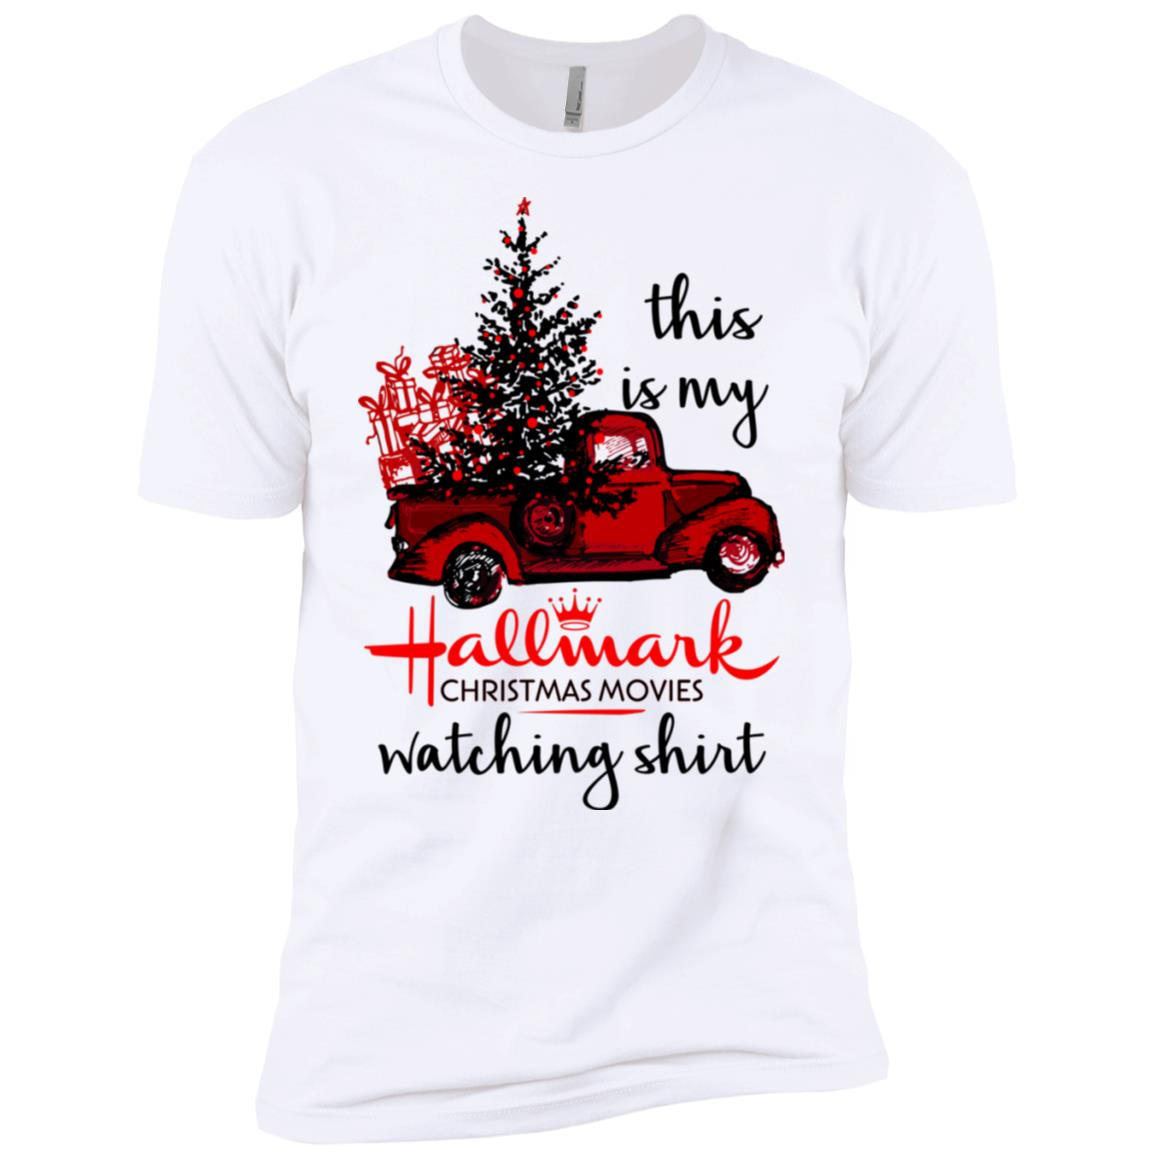 Hallmark Christmas Movies All Day This is My Hallmark Christmas Movie Watching Long Shirt